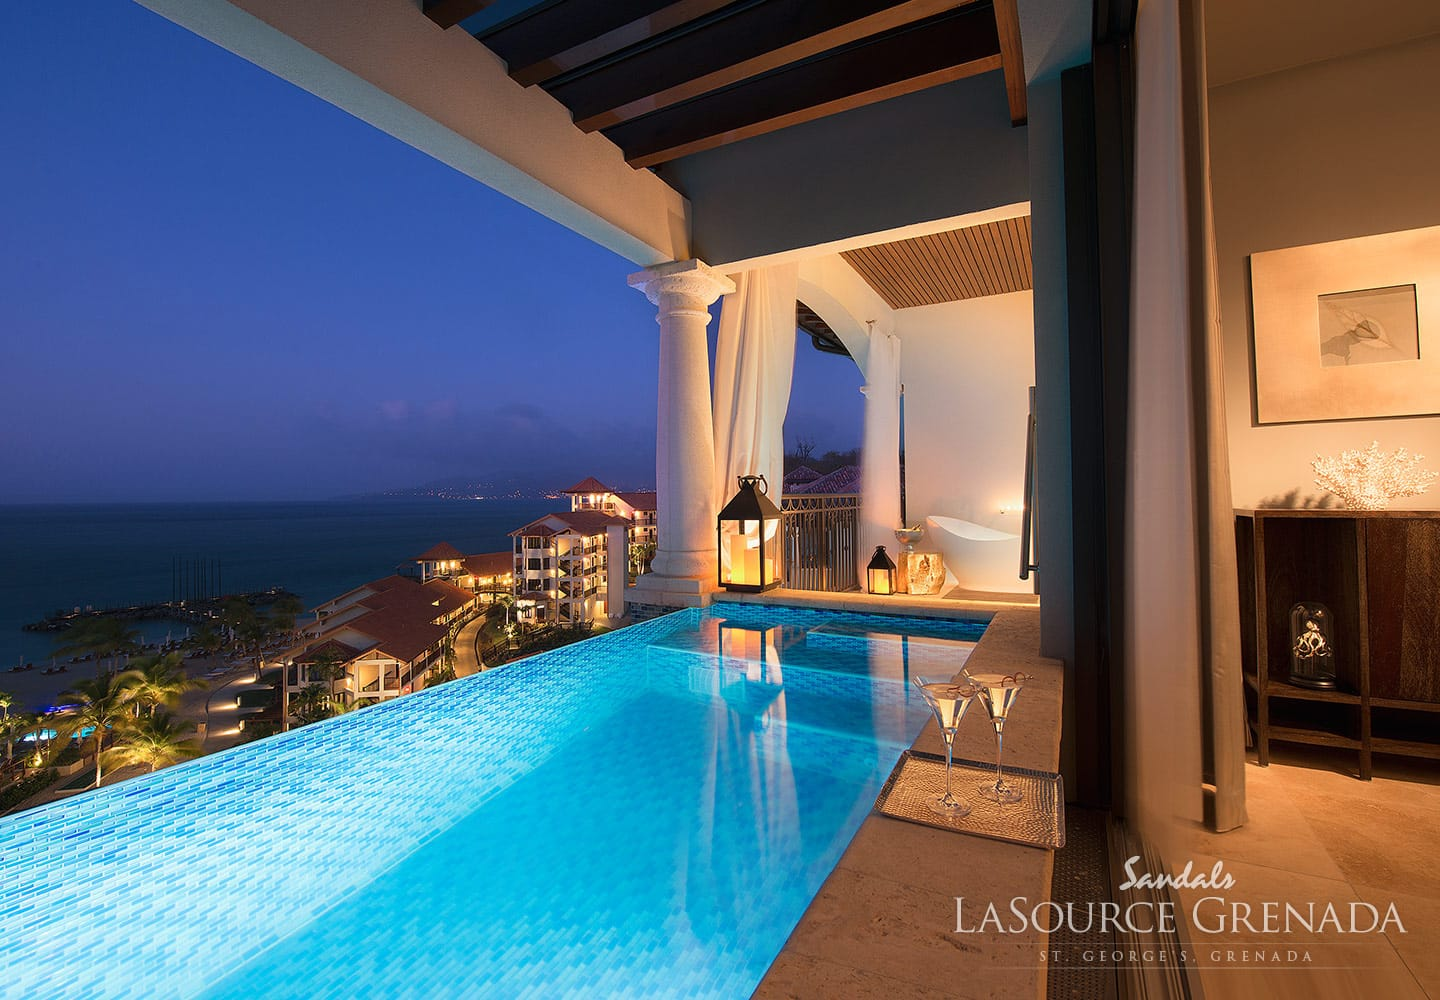 private pool in private room, overseeing the coast and ocean at the Sandals LaSource Grenada Luxury Resort, adult only vacation can be booked with Southern Travel Agency Augusta, GA